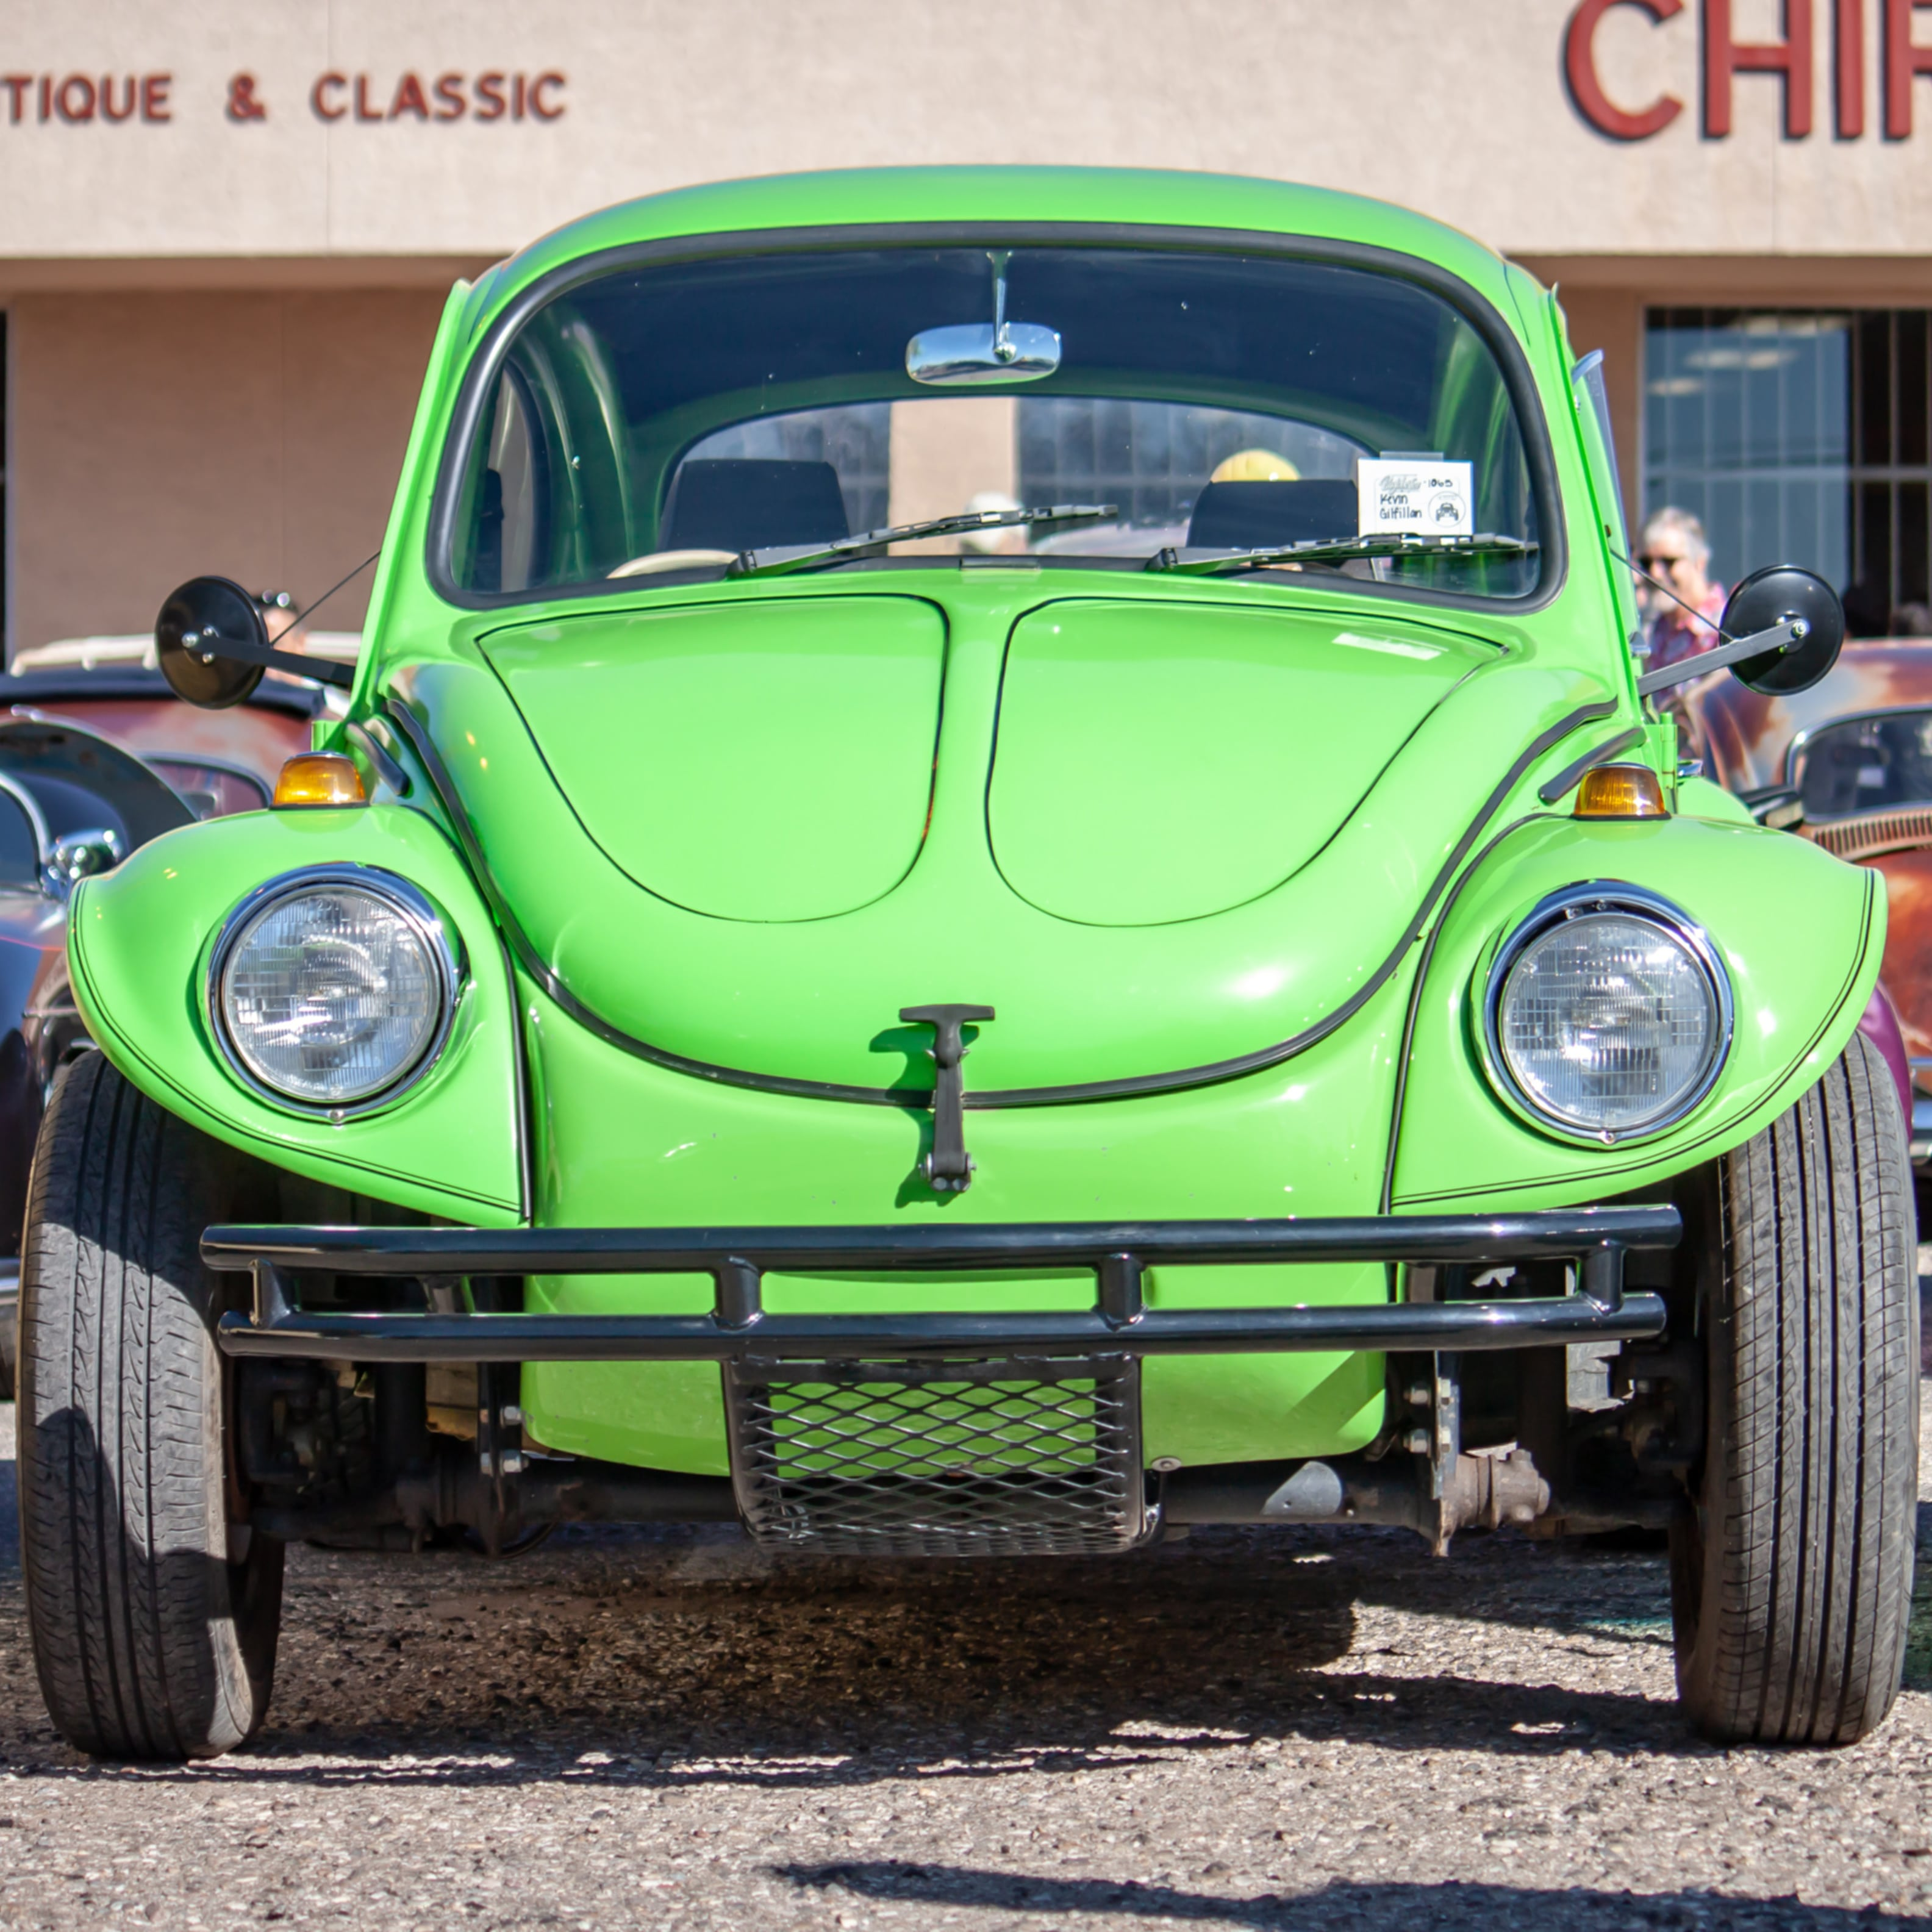 VW bug Parts, Chirco Home Page